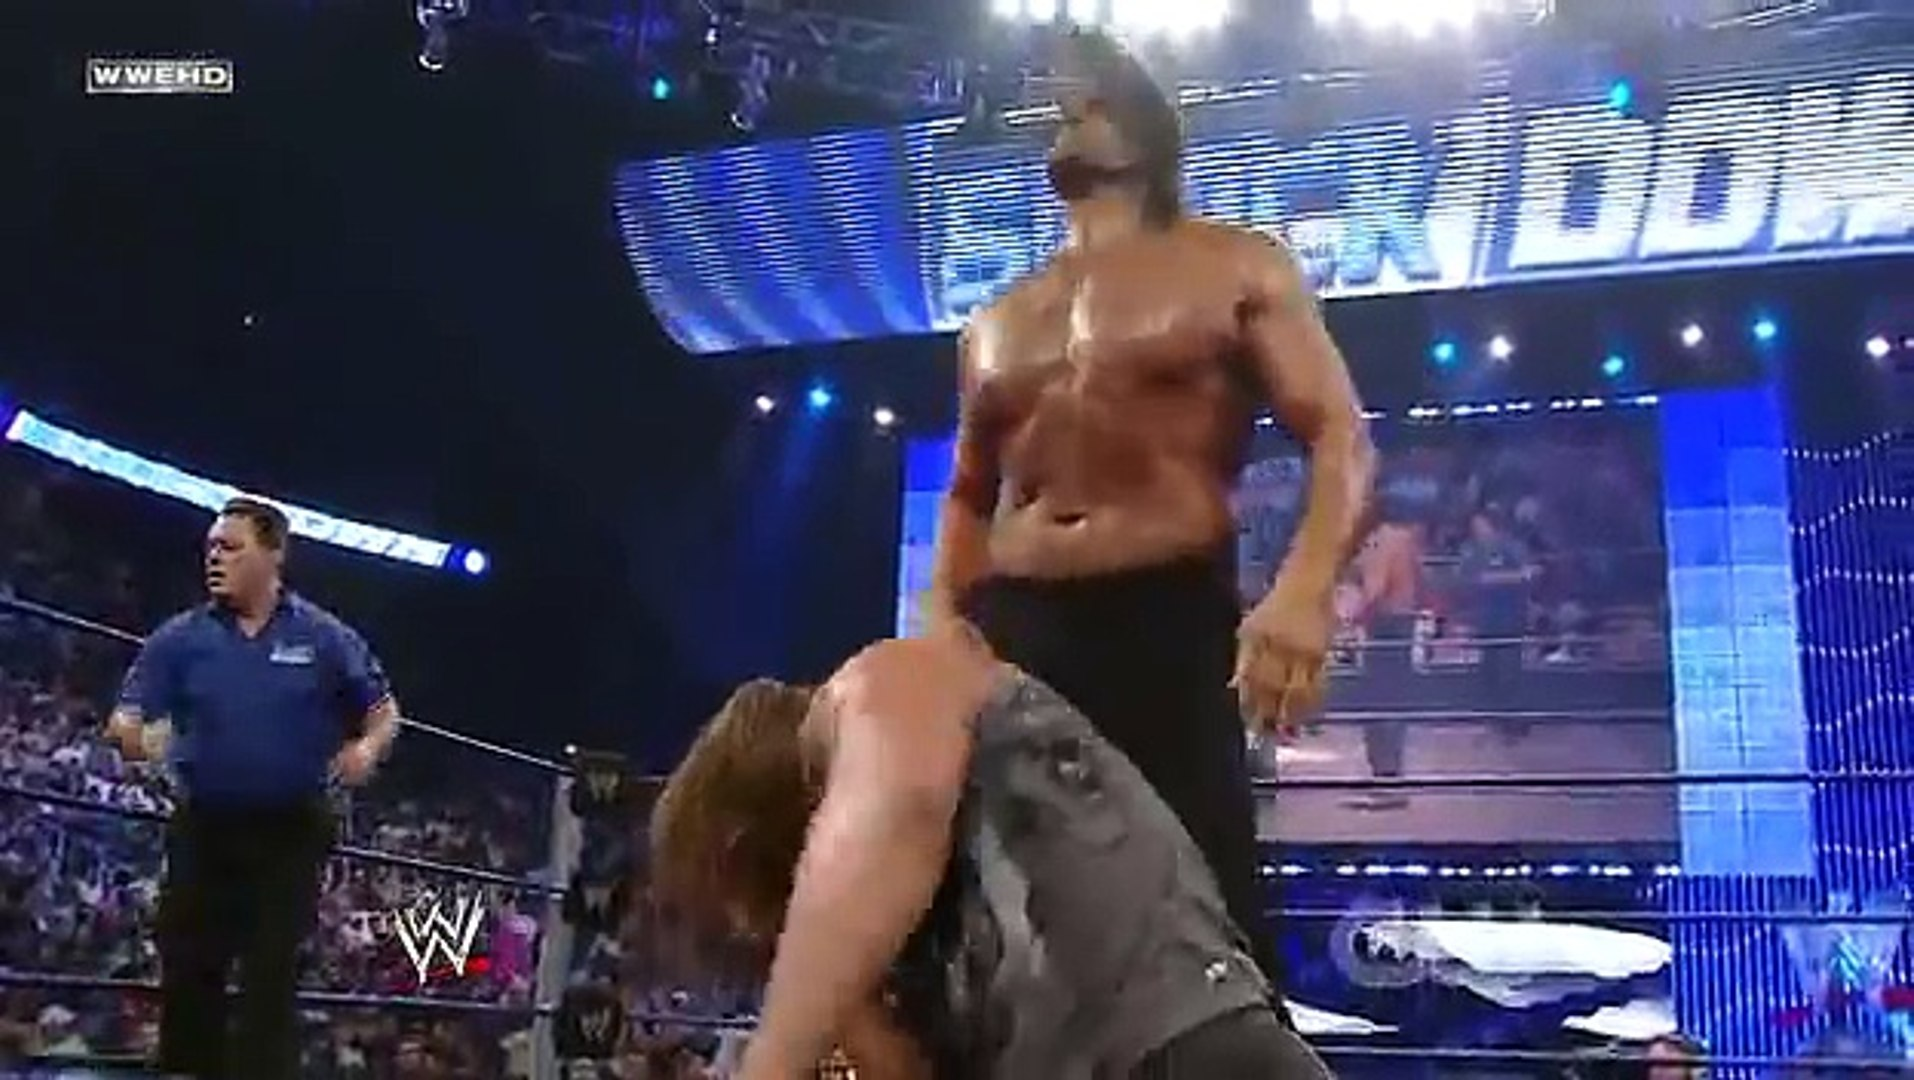 Triple H vs The Great Khali (Broken Glass Arm Wrestling)